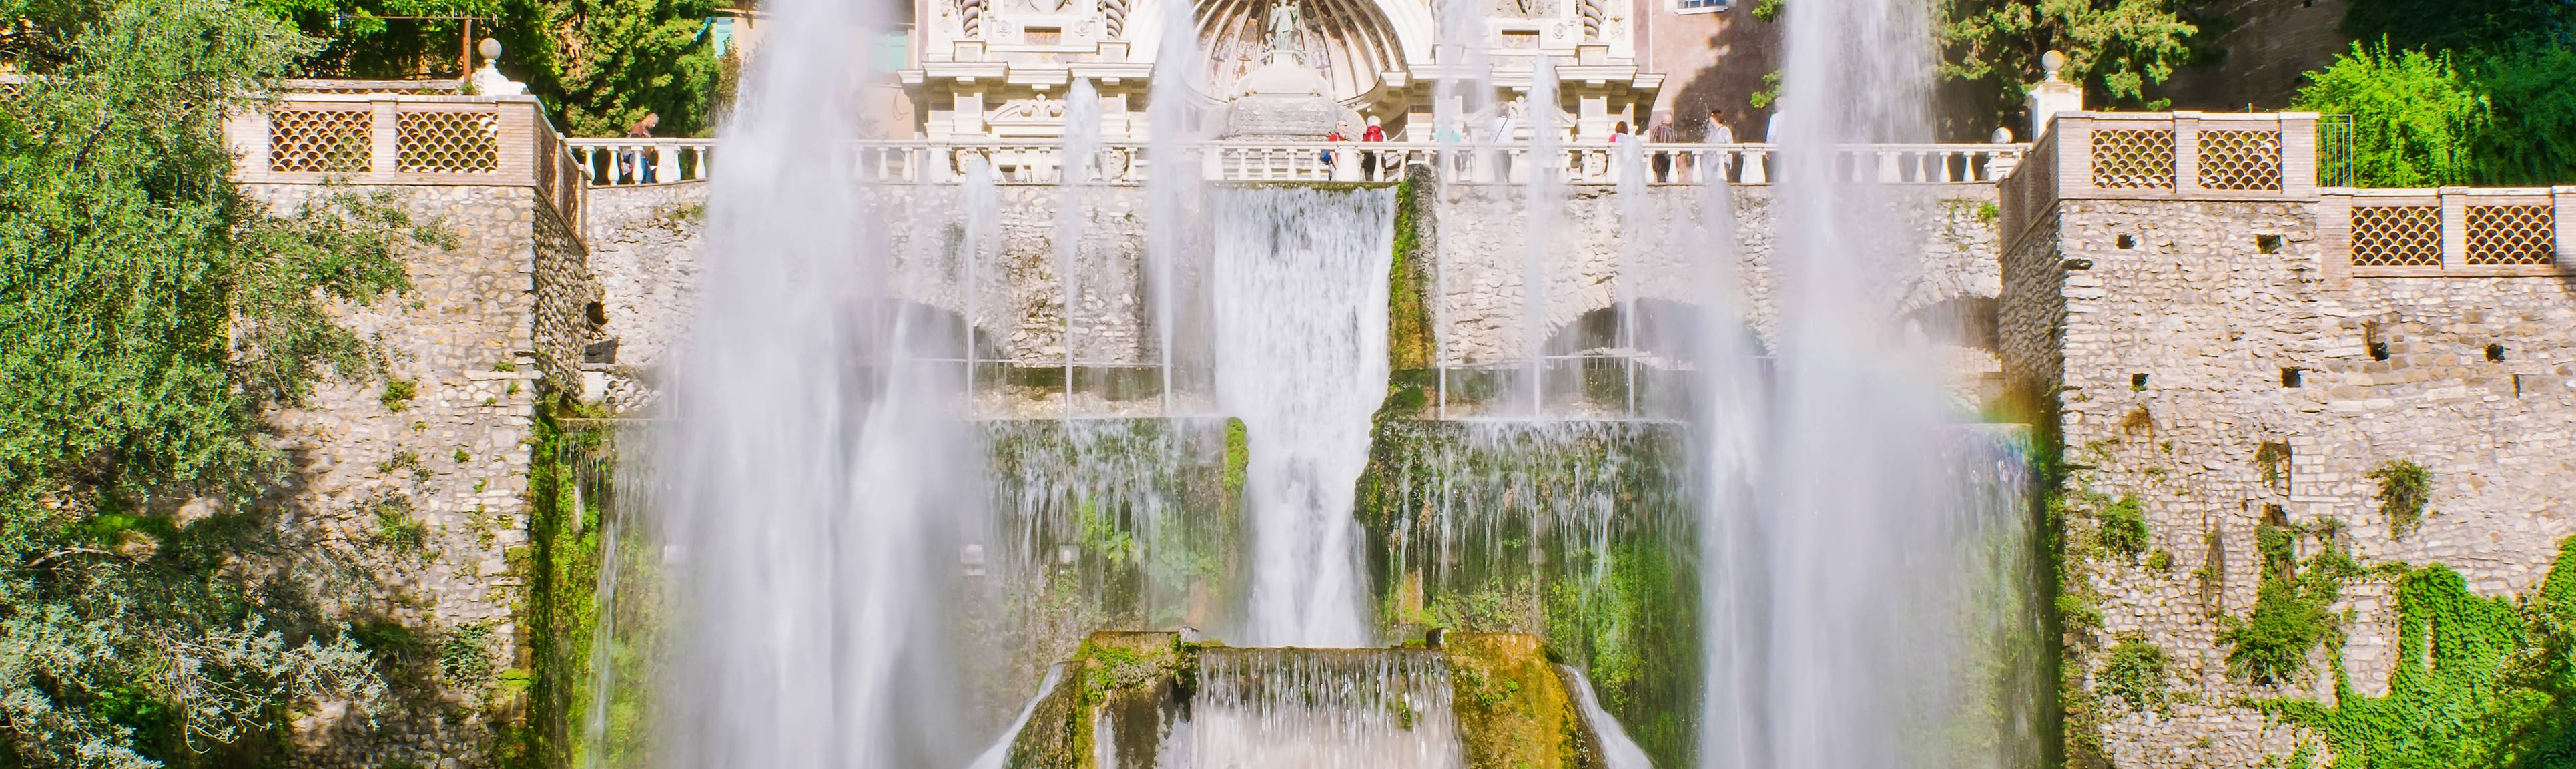 Two fountains with Villa D'Este in the background in Tivoli